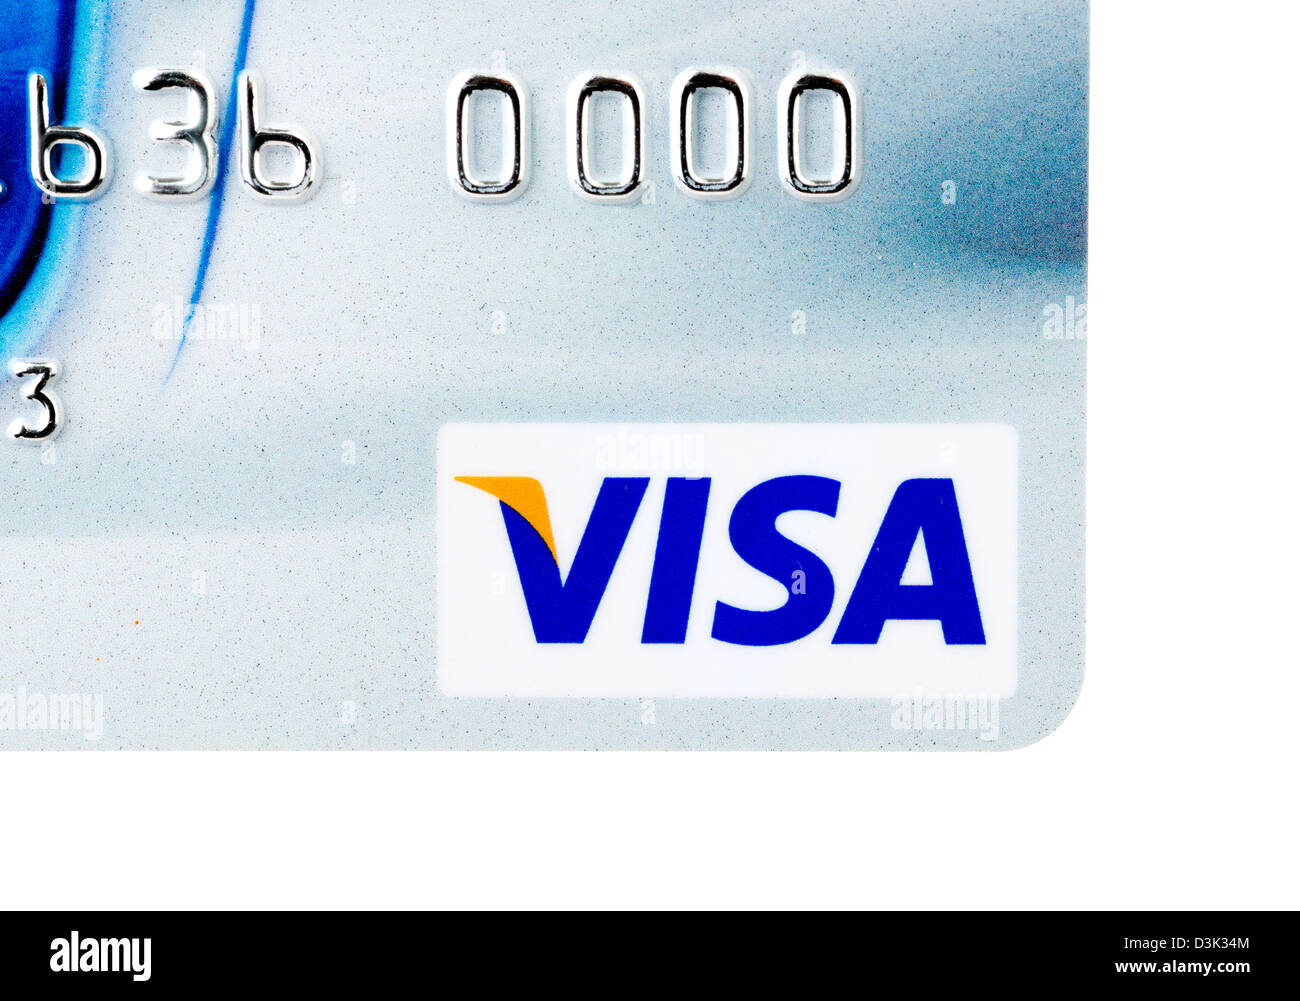 Visa Symbol Visa Stock Photos Visa Symbol Visa Stock Images Alamy